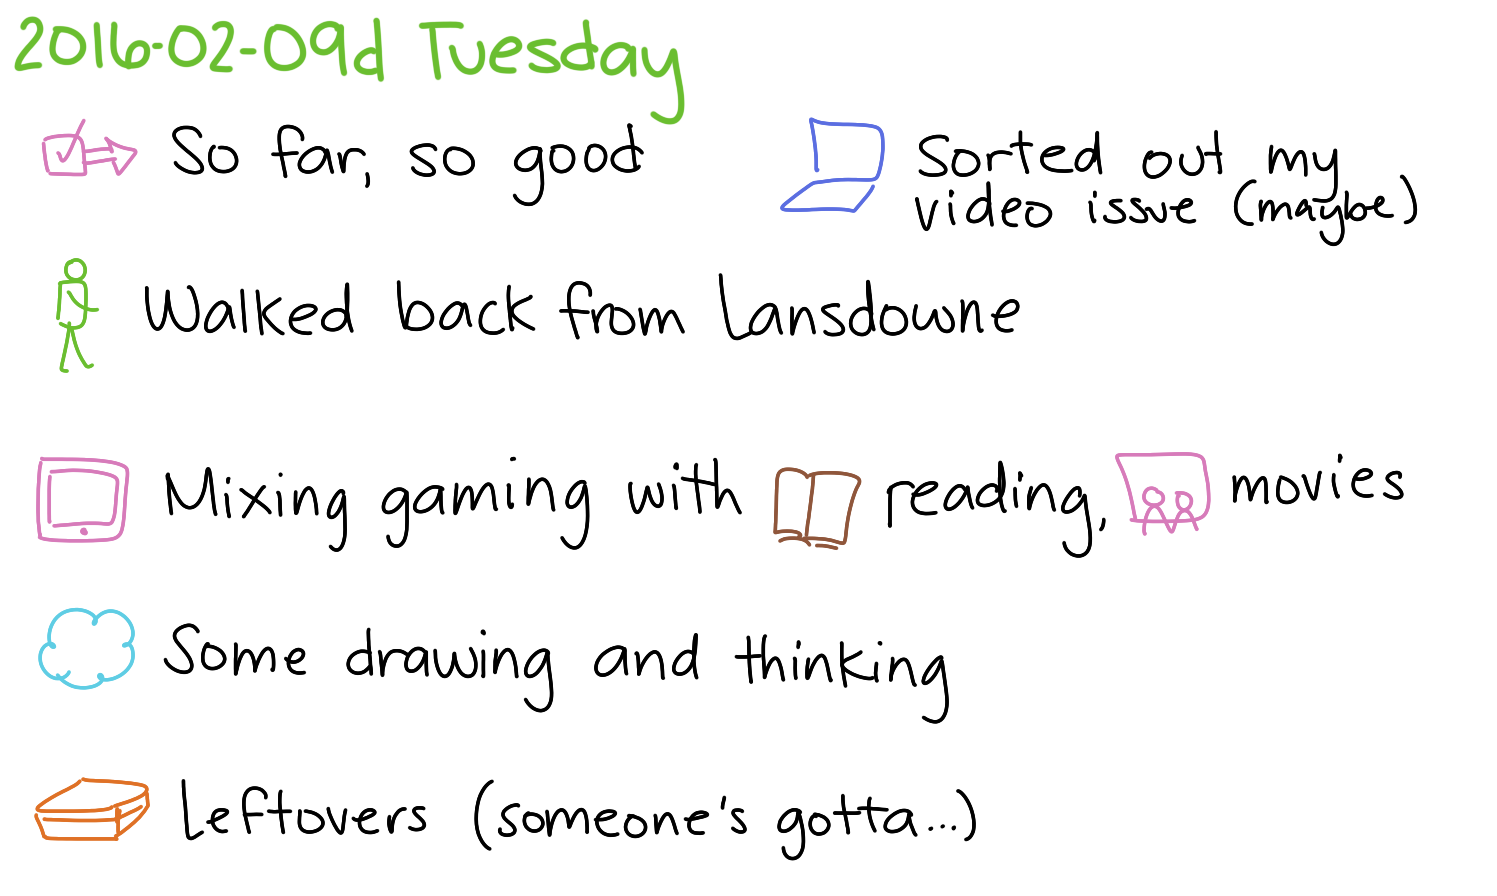 2016-02-09d Tuesday -- index card #journal.png